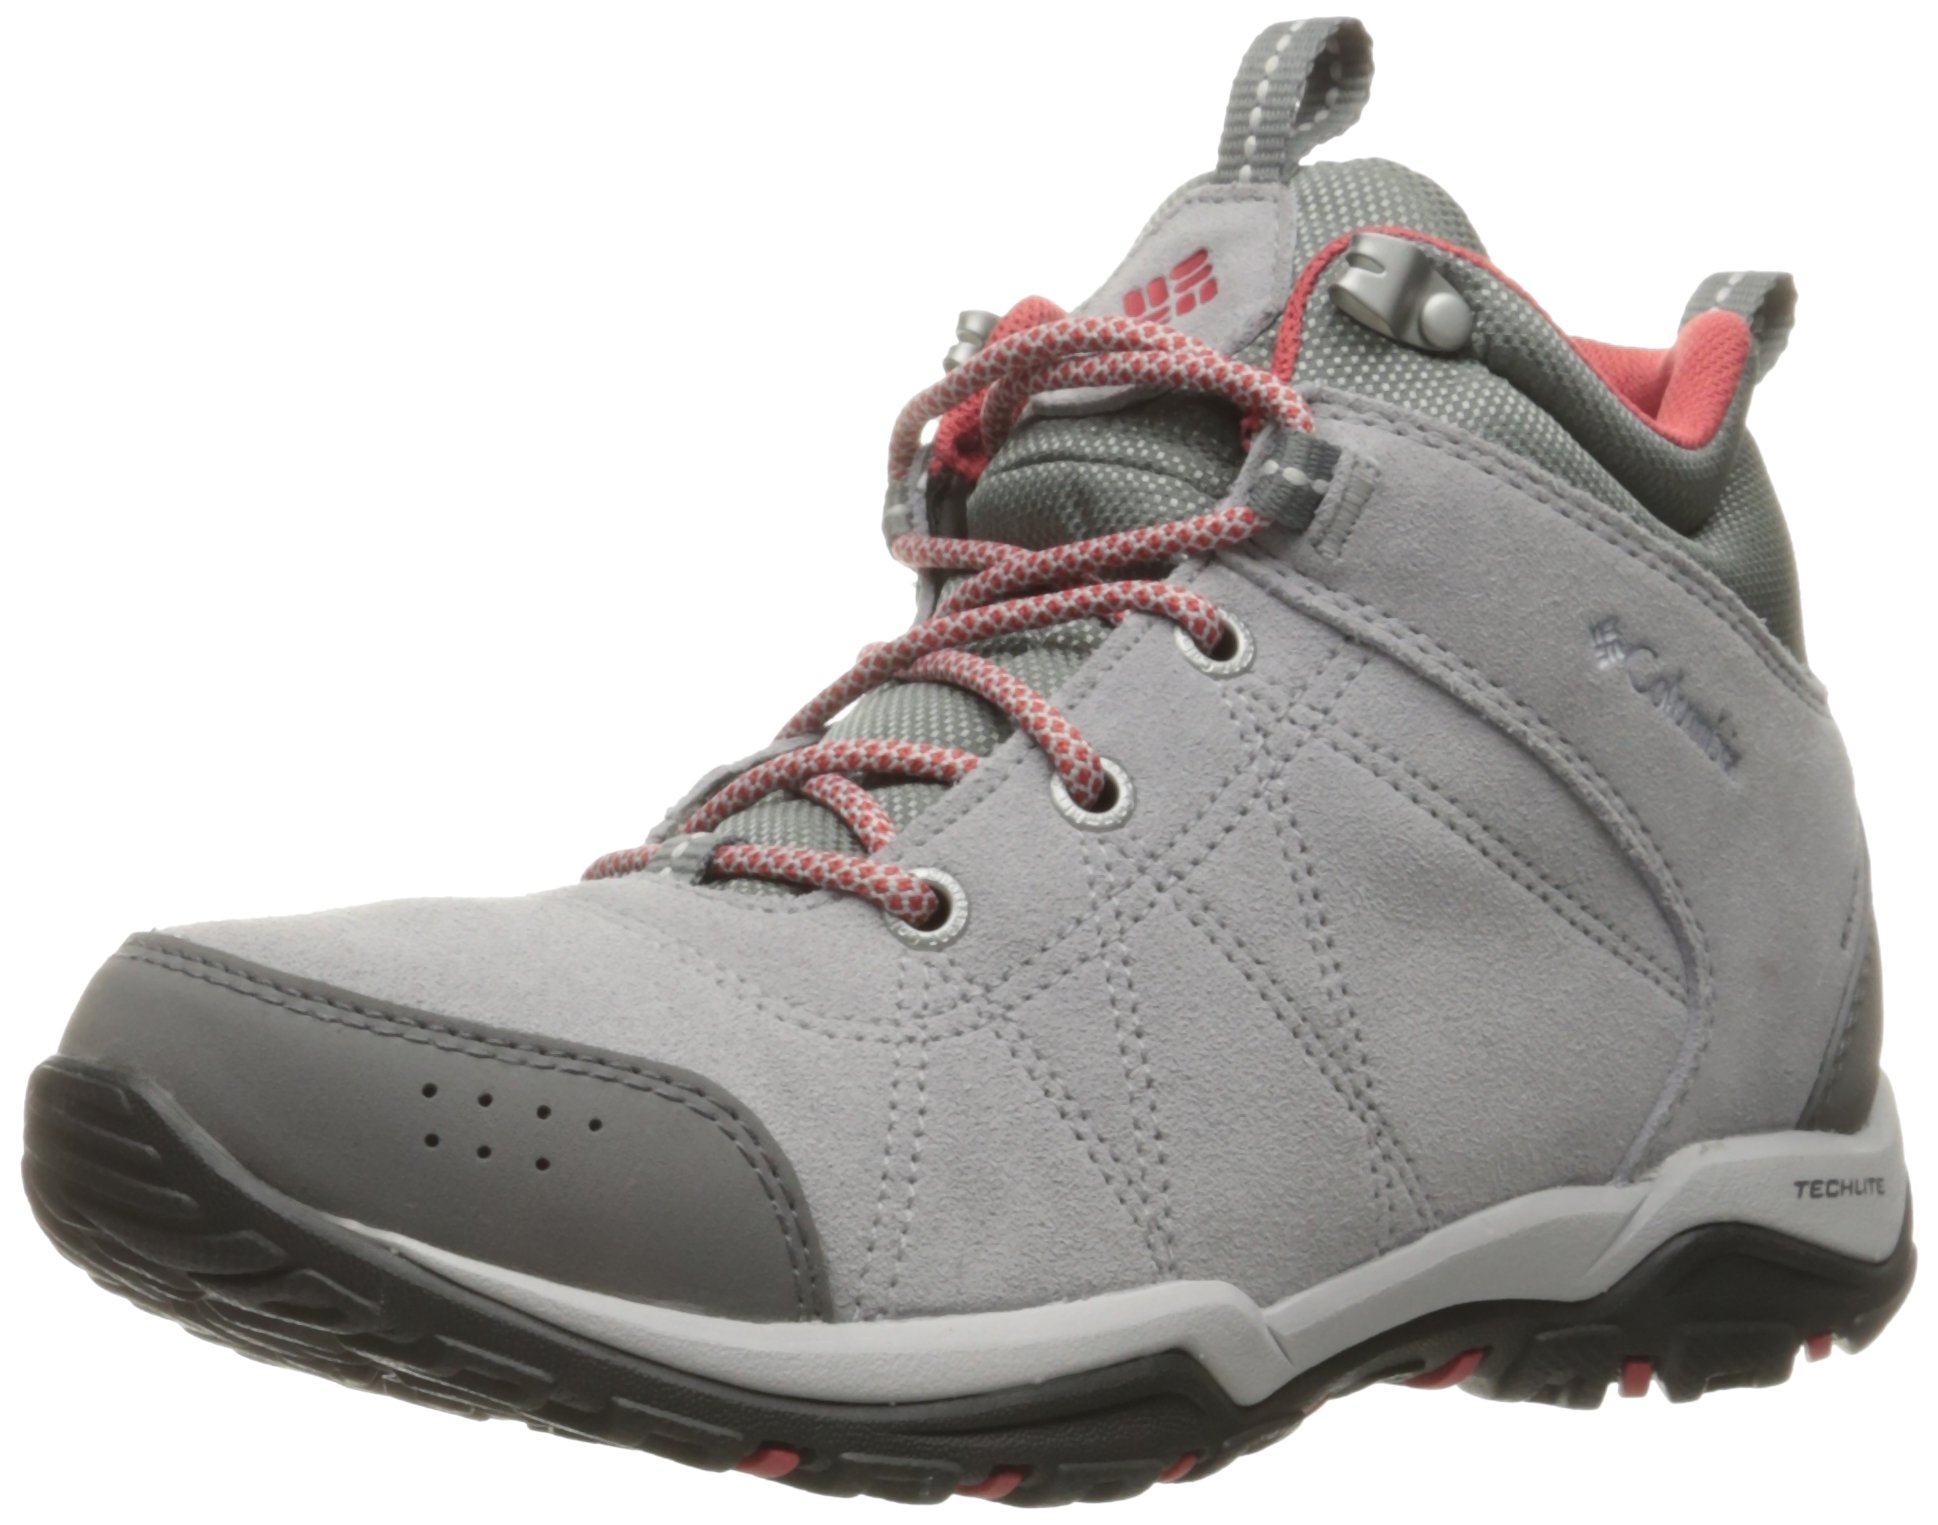 Columbia Women's Fire Venture Mid Waterproof Hiking Boot, Steam, Sunset Red, 5 B US